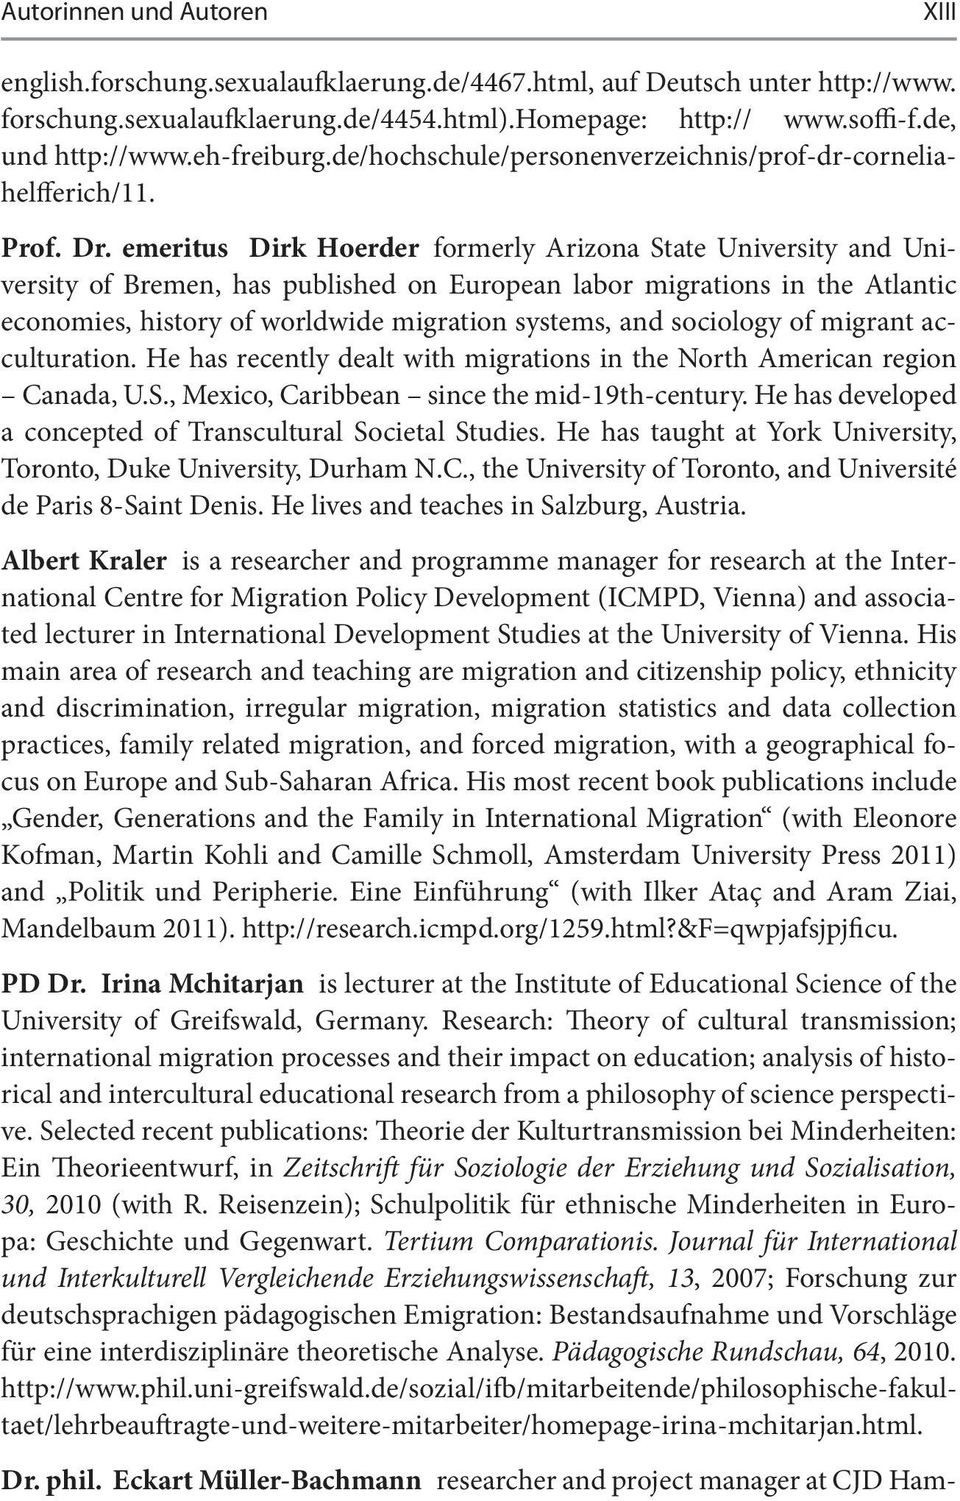 emeritus Dirk Hoerder formerly Arizona State University and University of Bremen, has published on European labor migrations in the Atlantic economies, history of worldwide migration systems, and